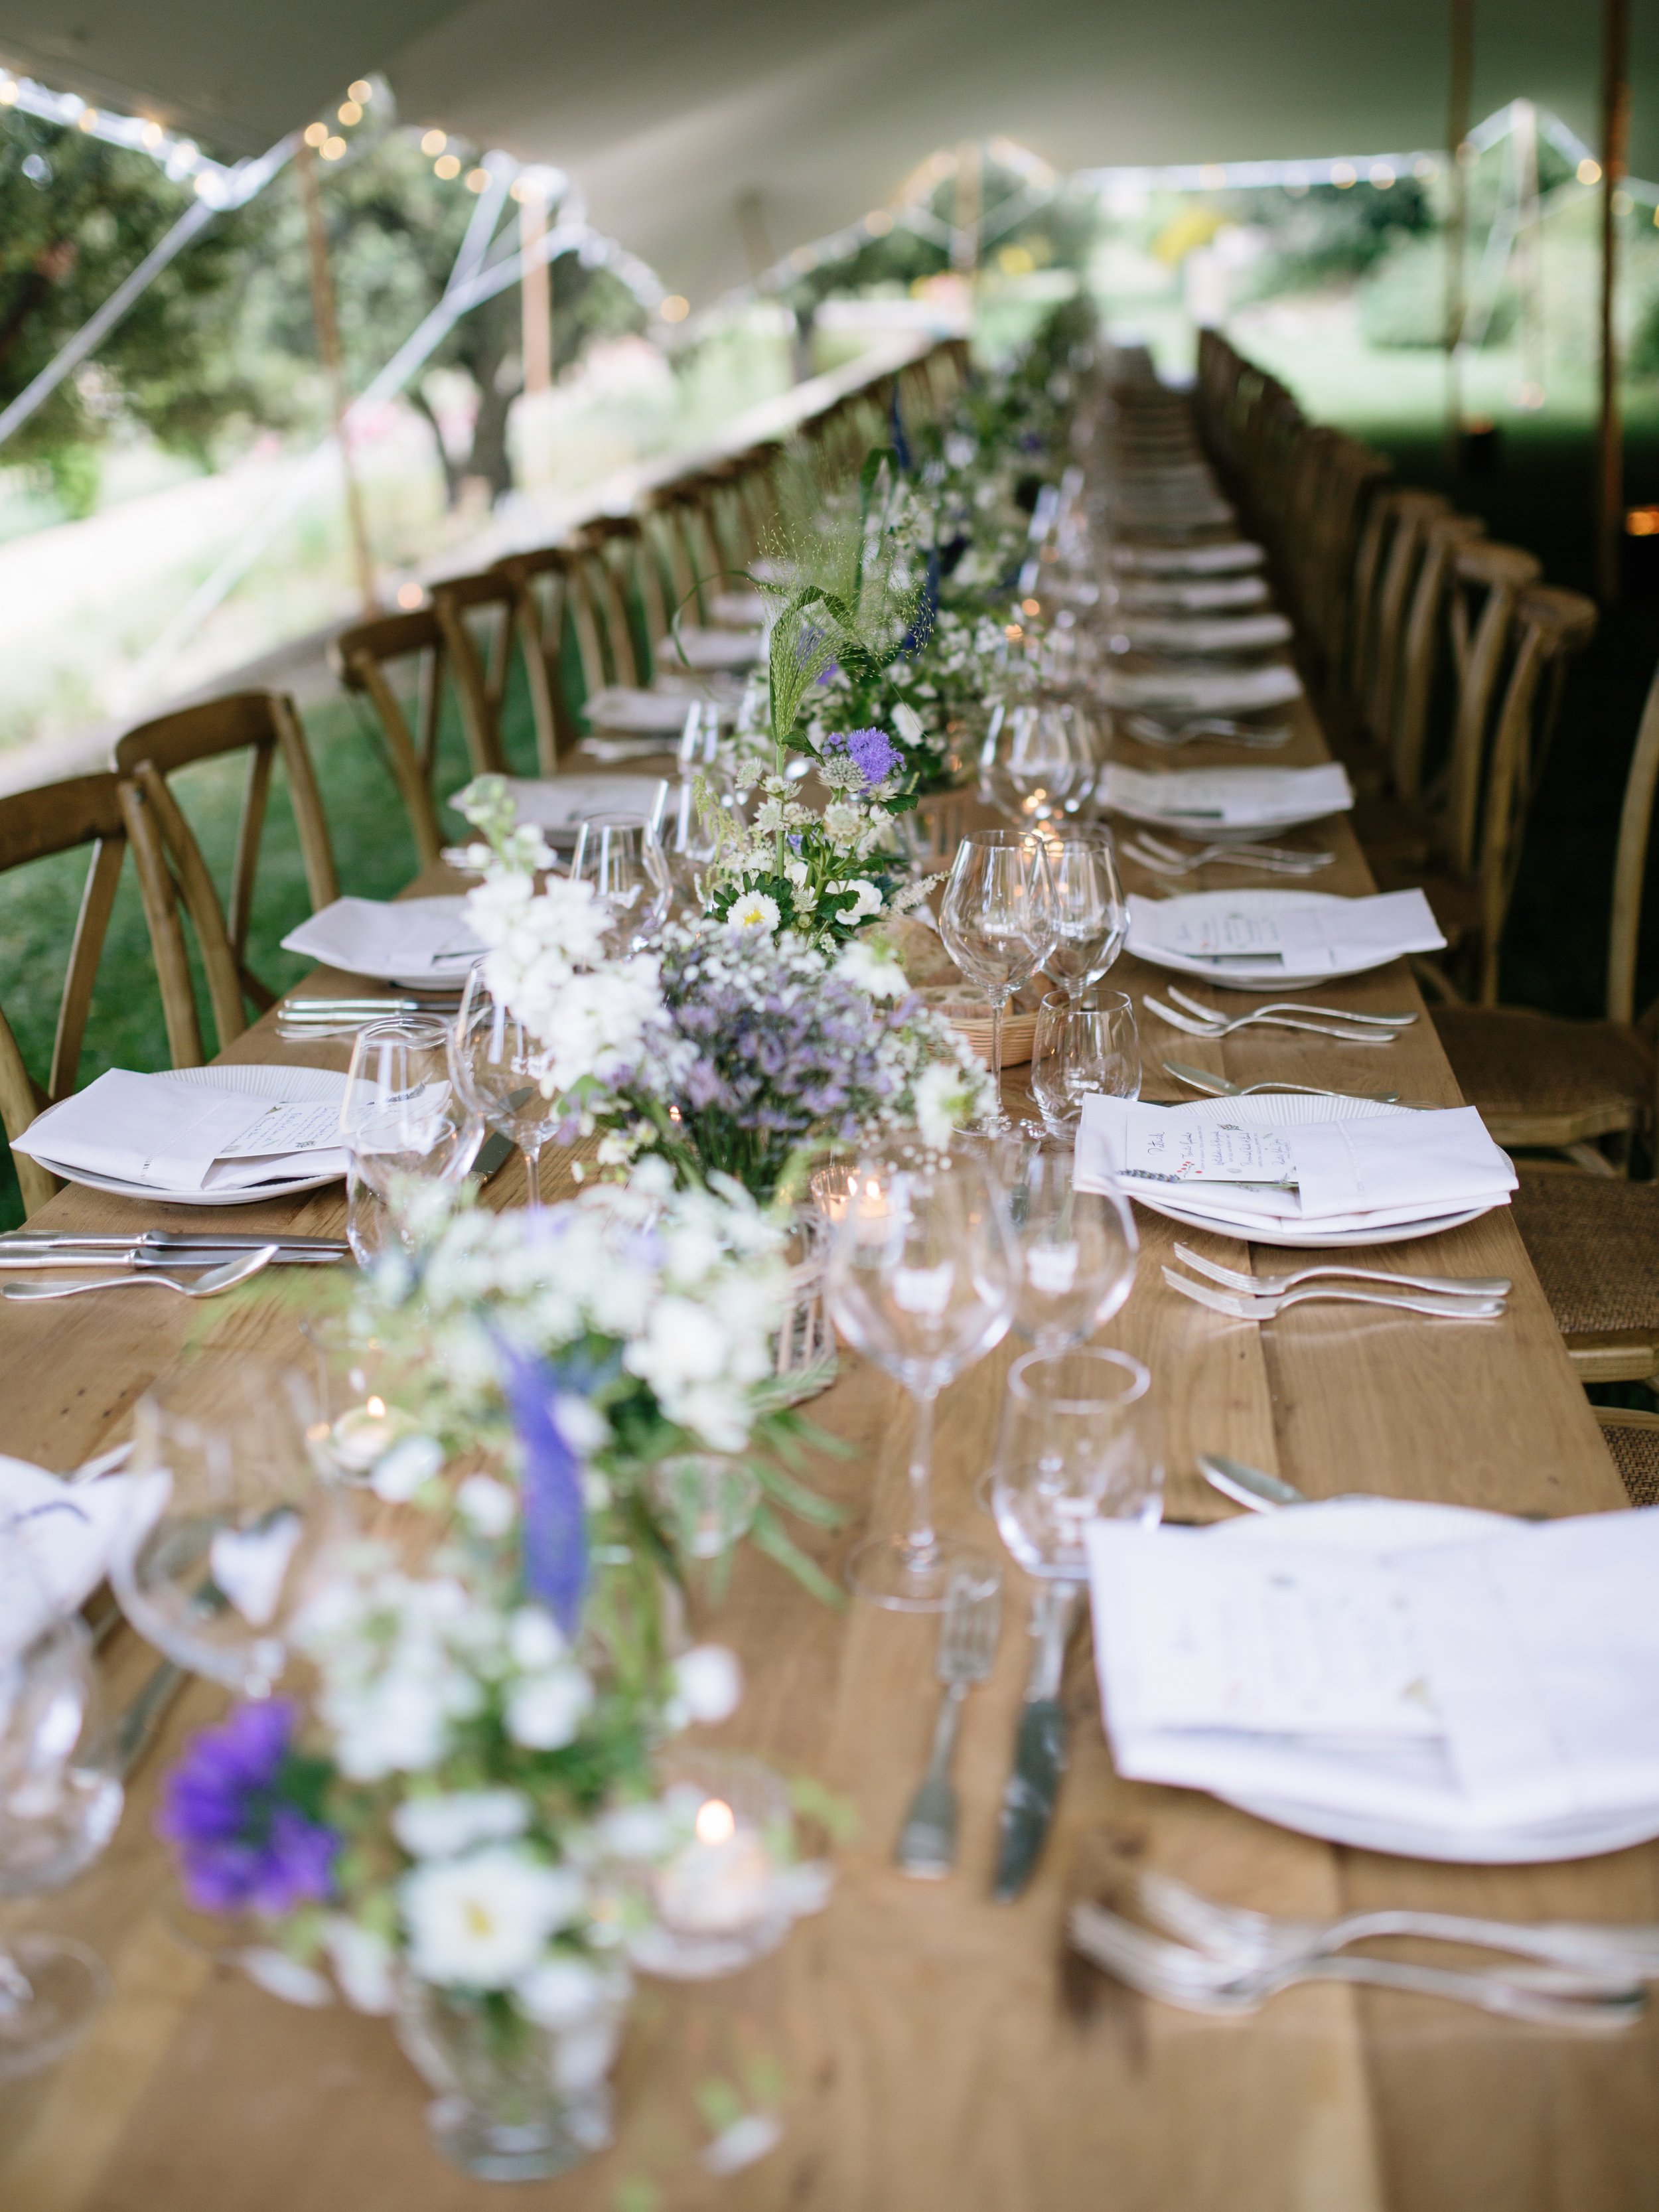 Provence Decoration Wedding In Provence Elopement In France Wedding Planner